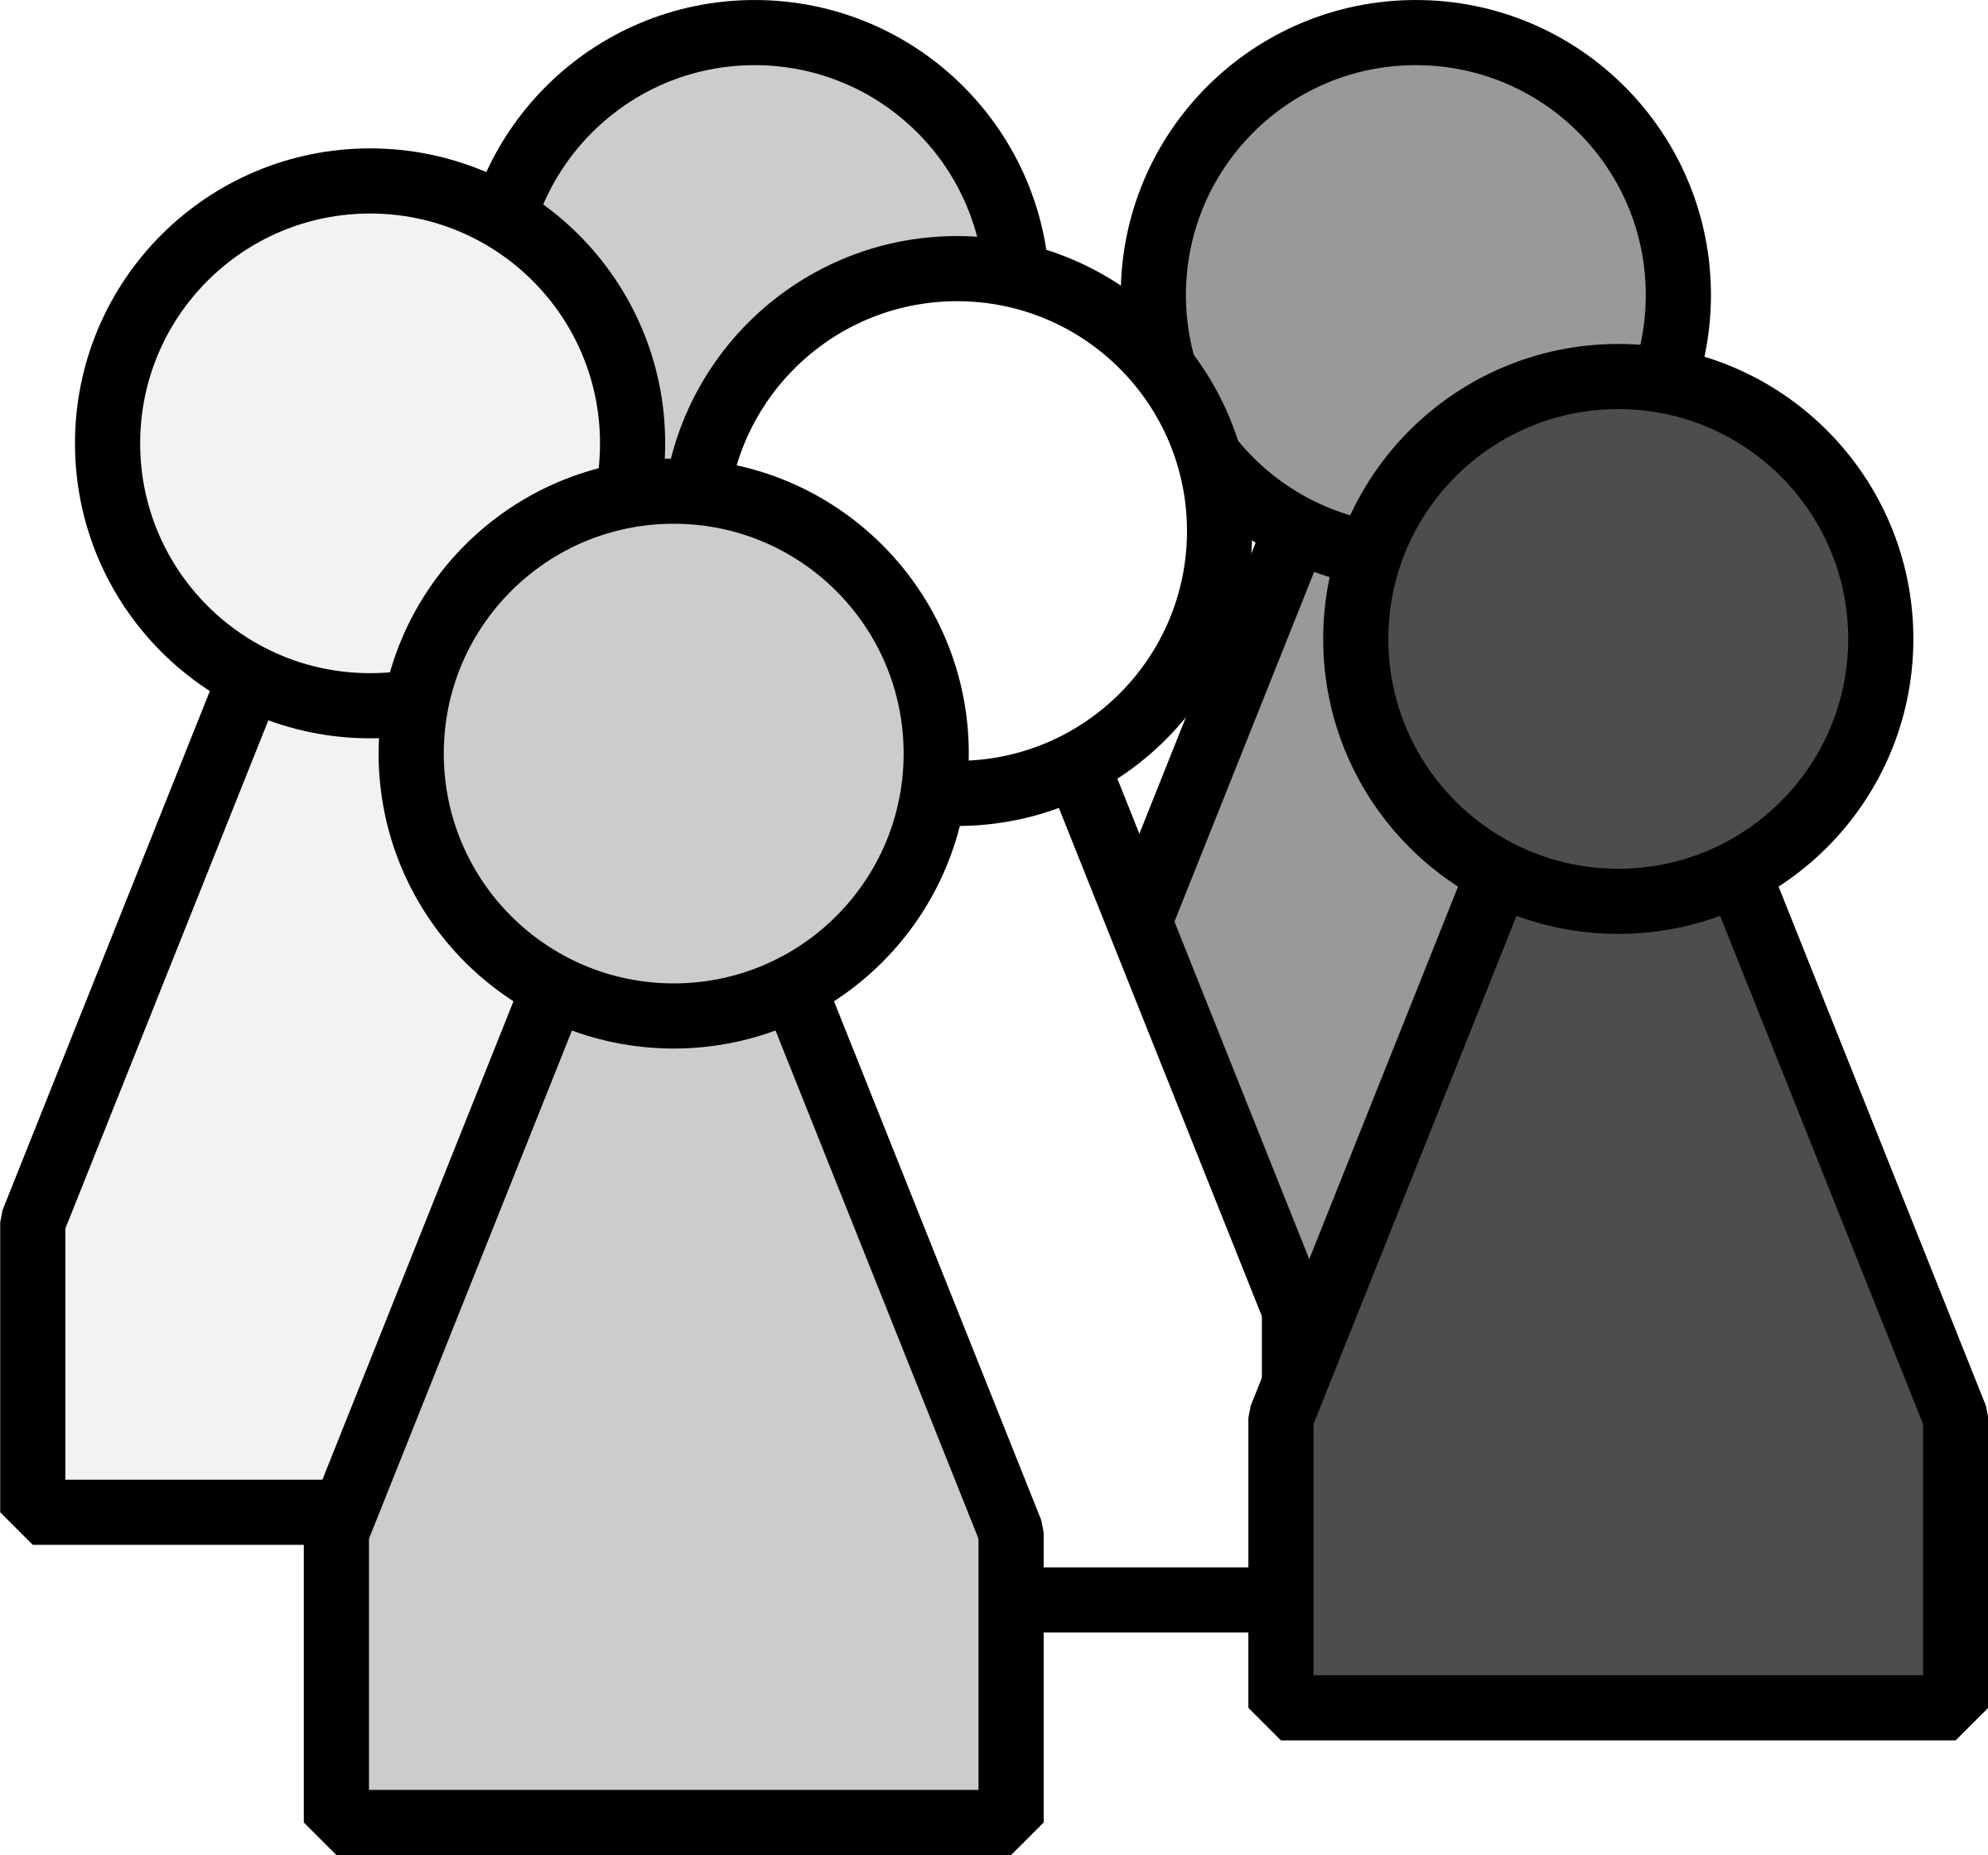 Game piece big image. Group clipart different group